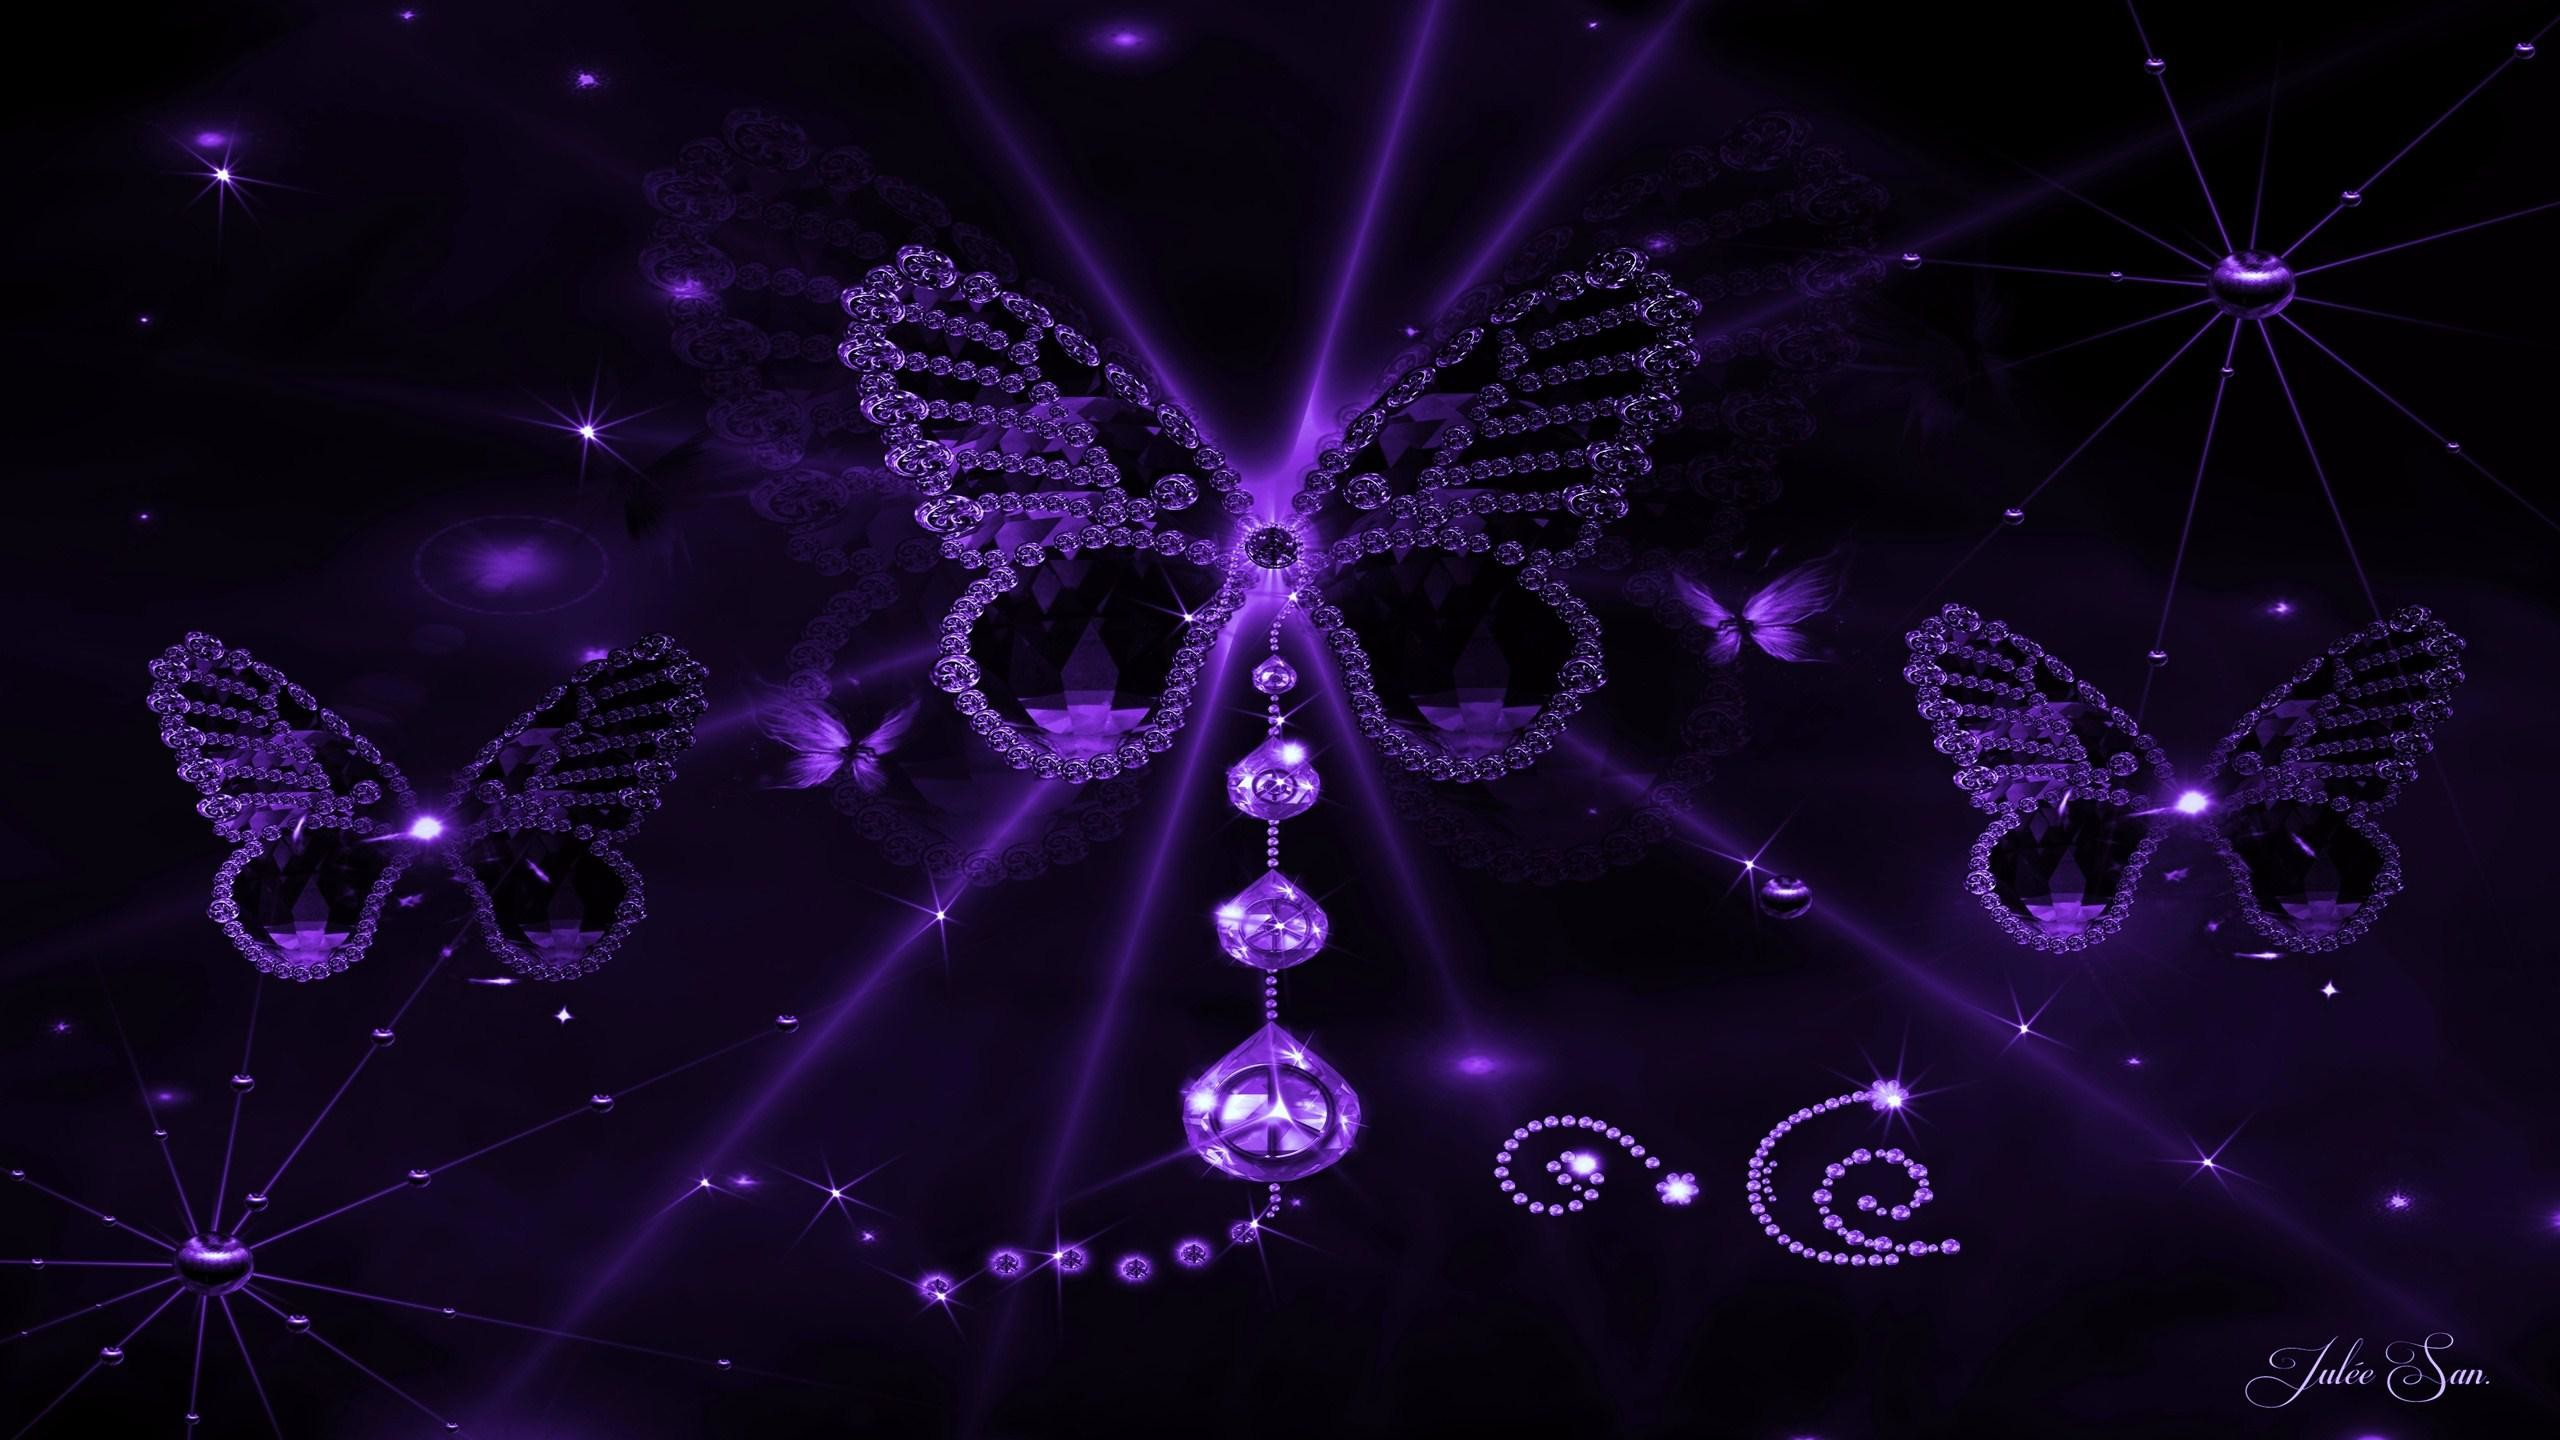 Purple Wallpapers 12 Best Wallpapers Collection Desktop: Purple Butterfly Wallpapers (63+ Images